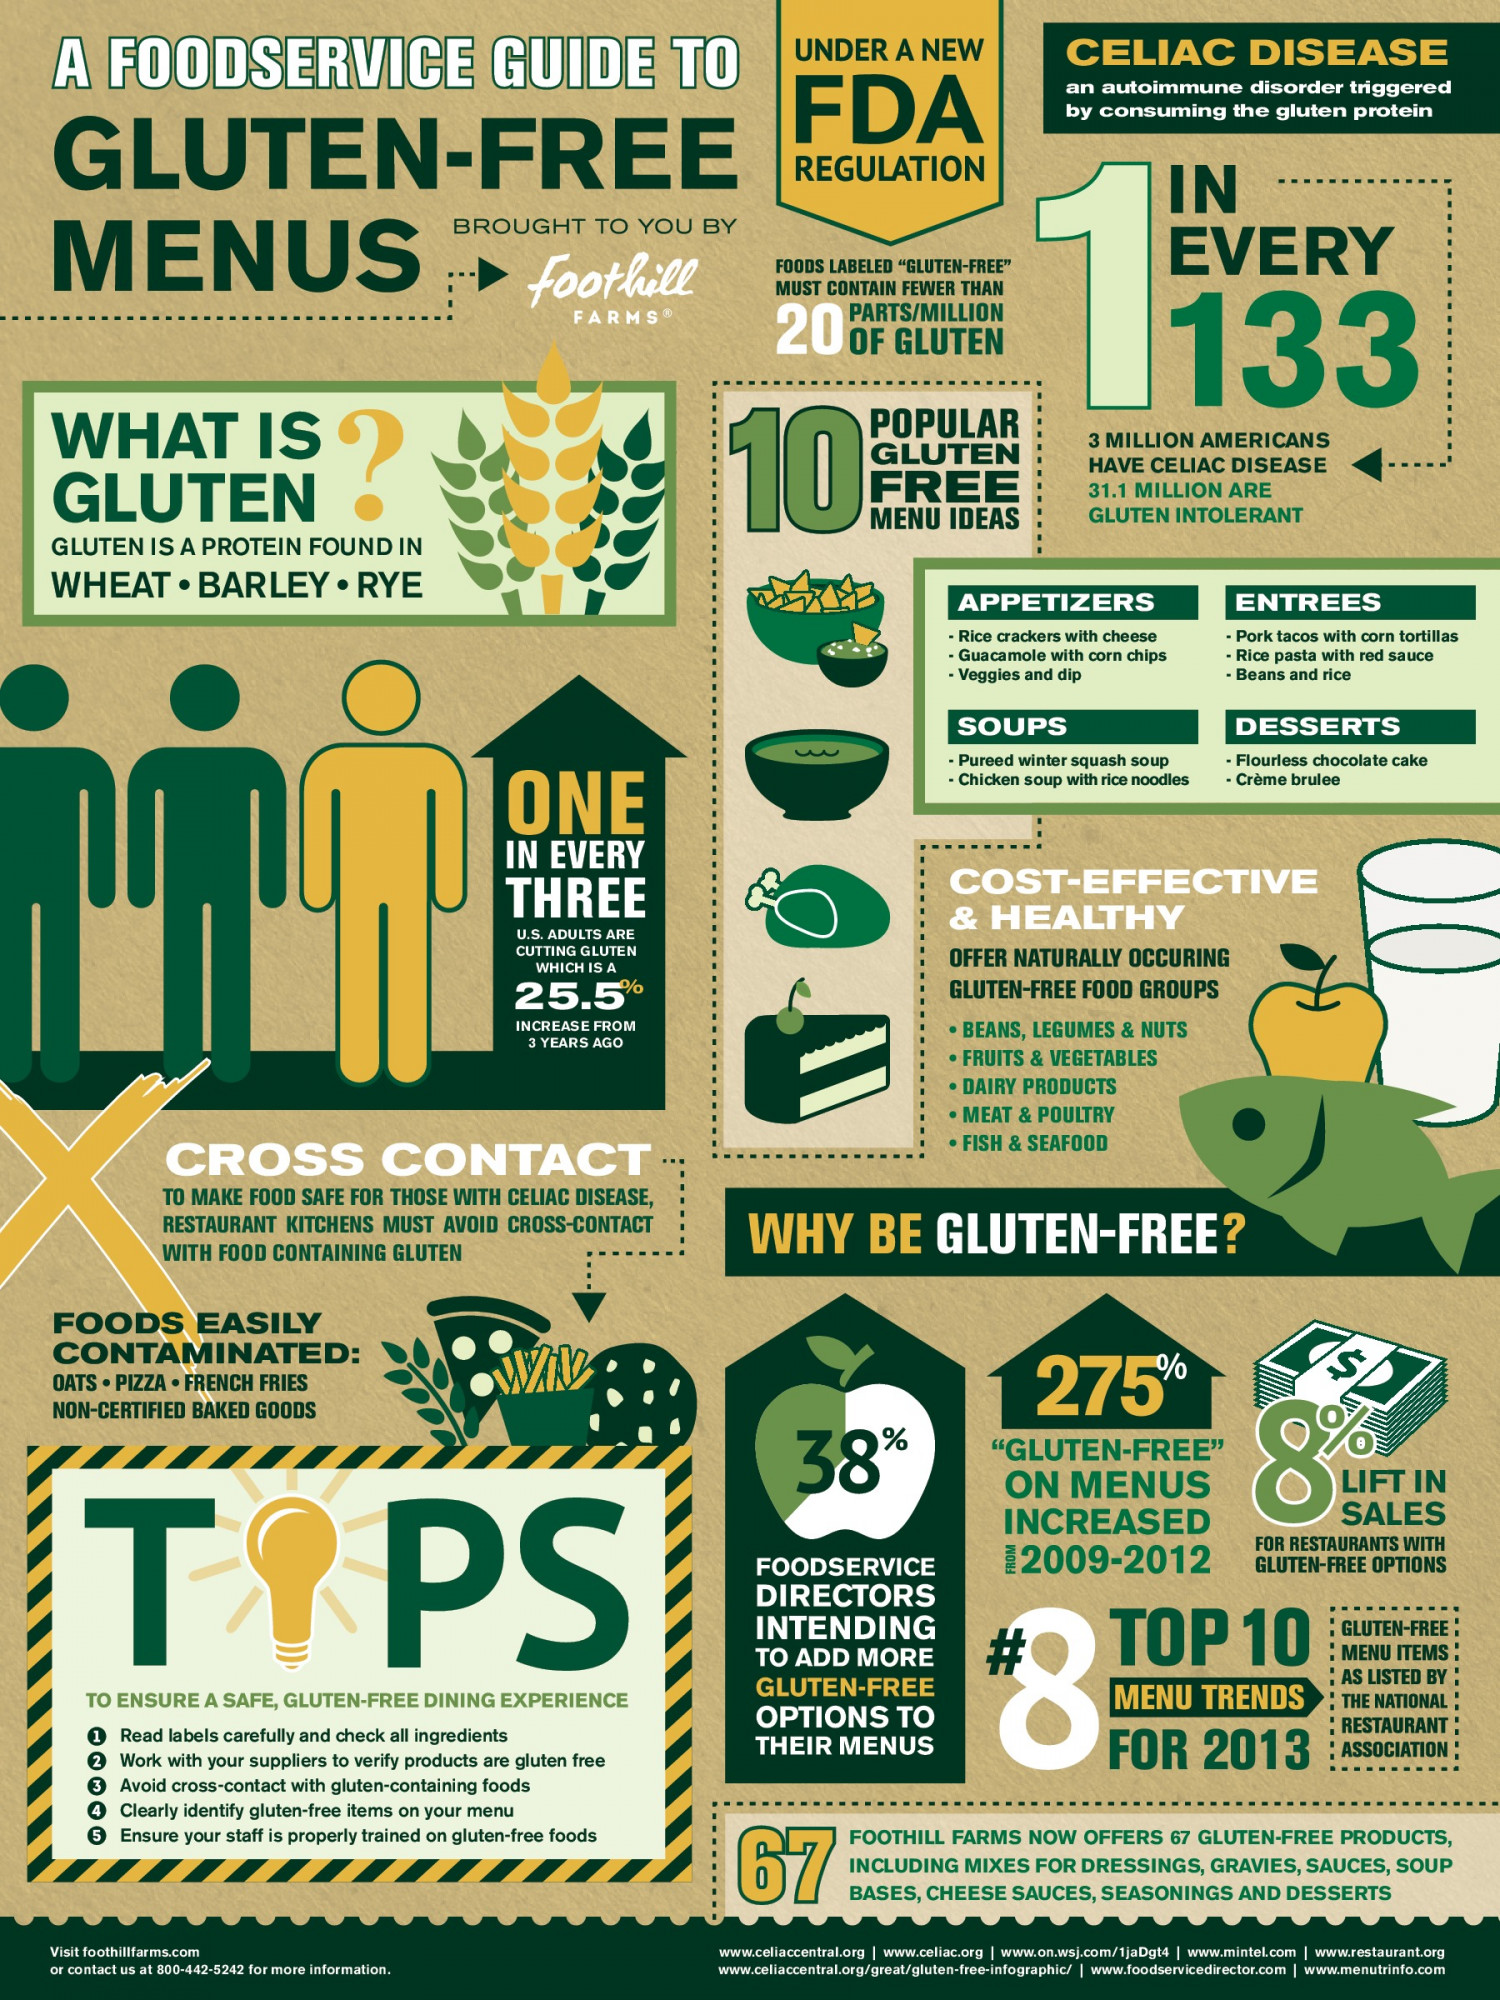 A Foodservice Guide to Gluten-Free Menus Infographic